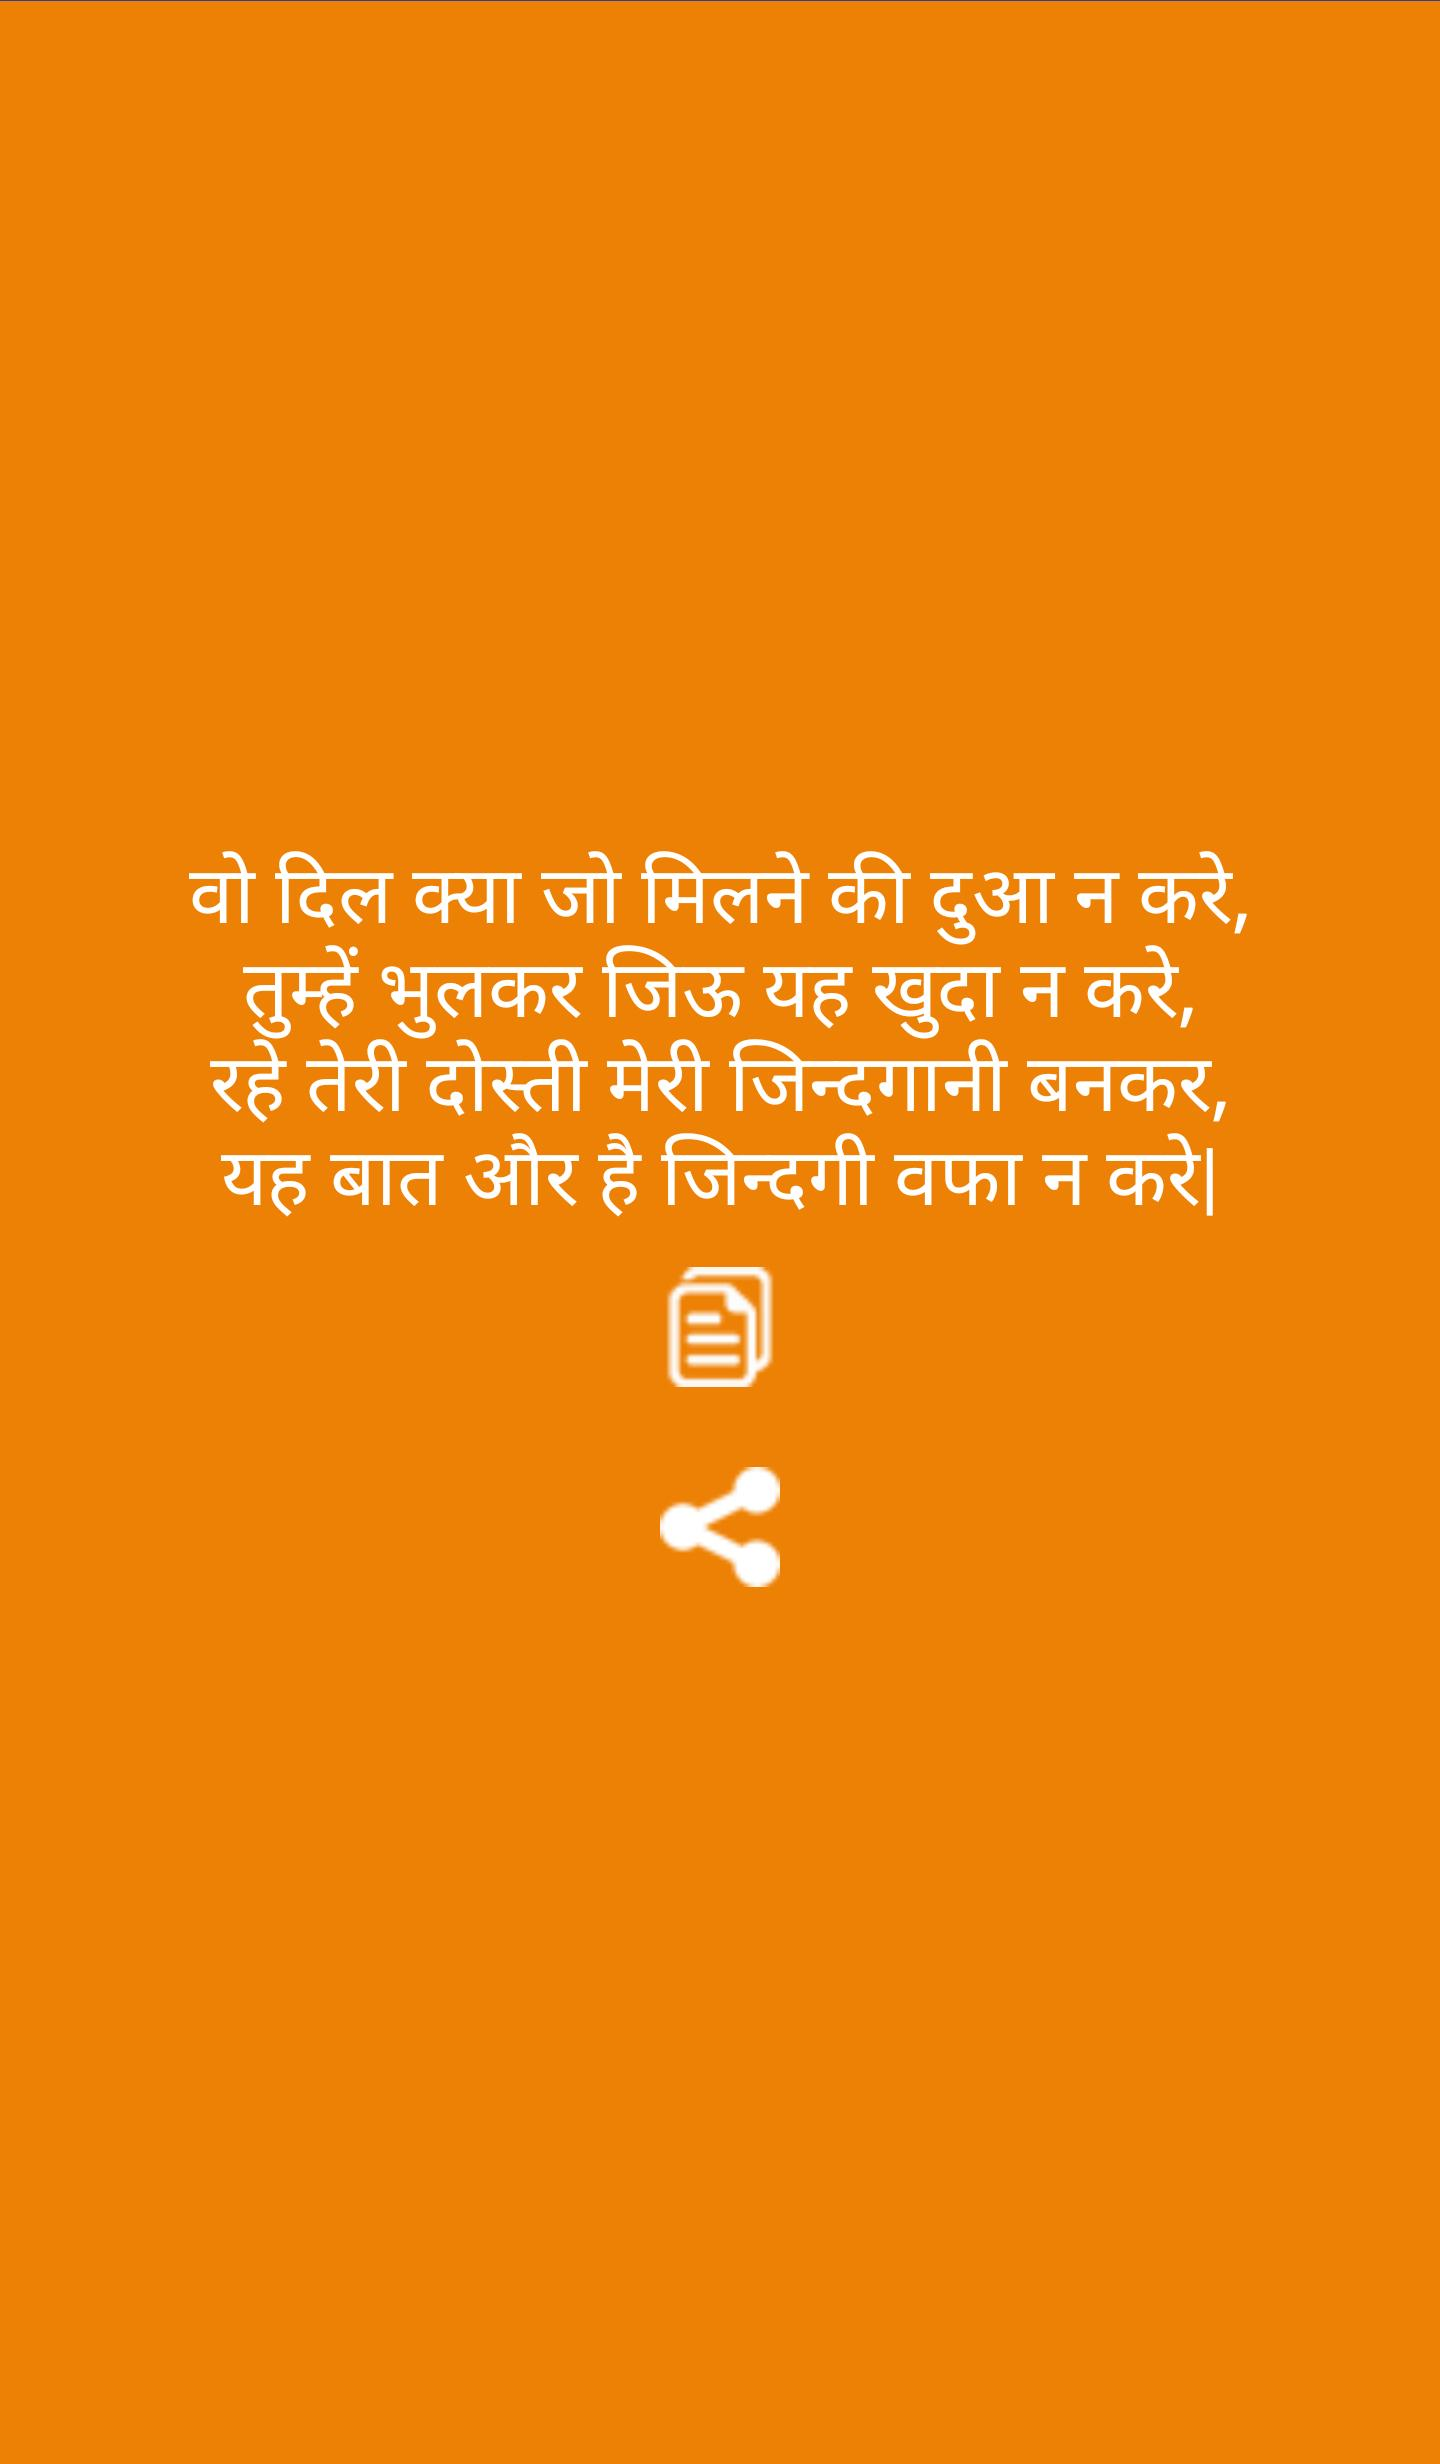 Live Friendship Status(Hindi) for Android - APK Download